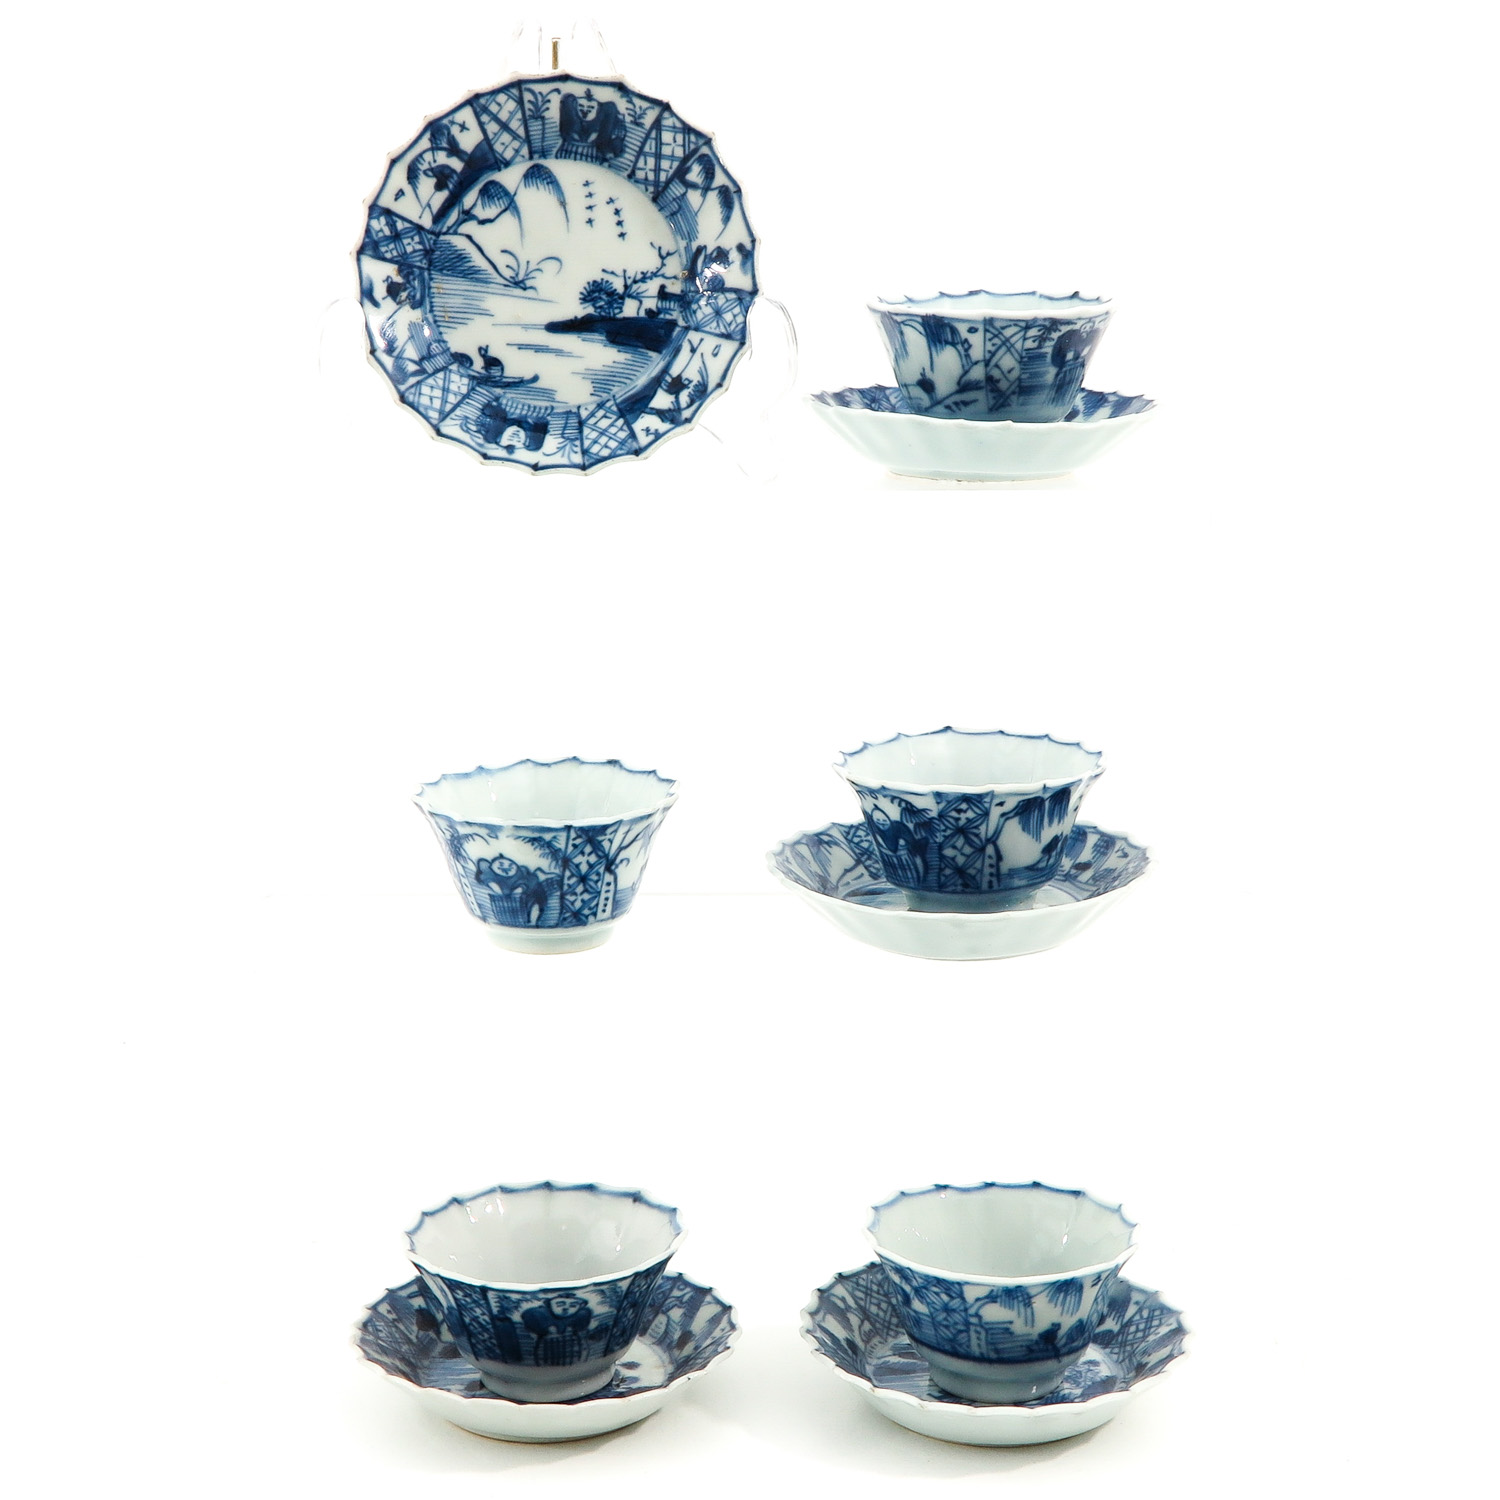 A Collection of 5 Cups and Saucers